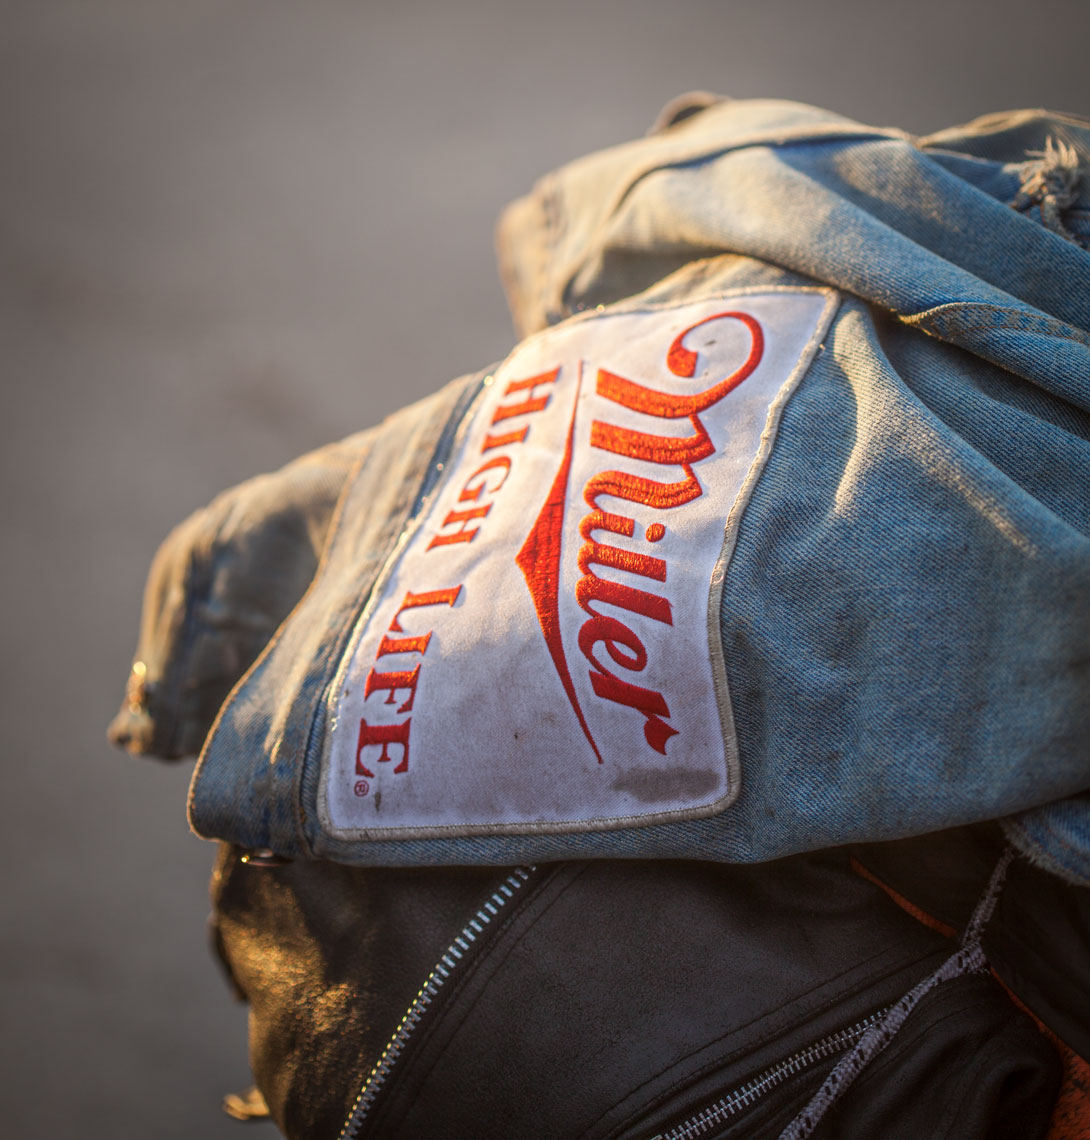 18 Location Photography Miller High Life Beer Jean Jacket Motorcycles Sundown Race Track